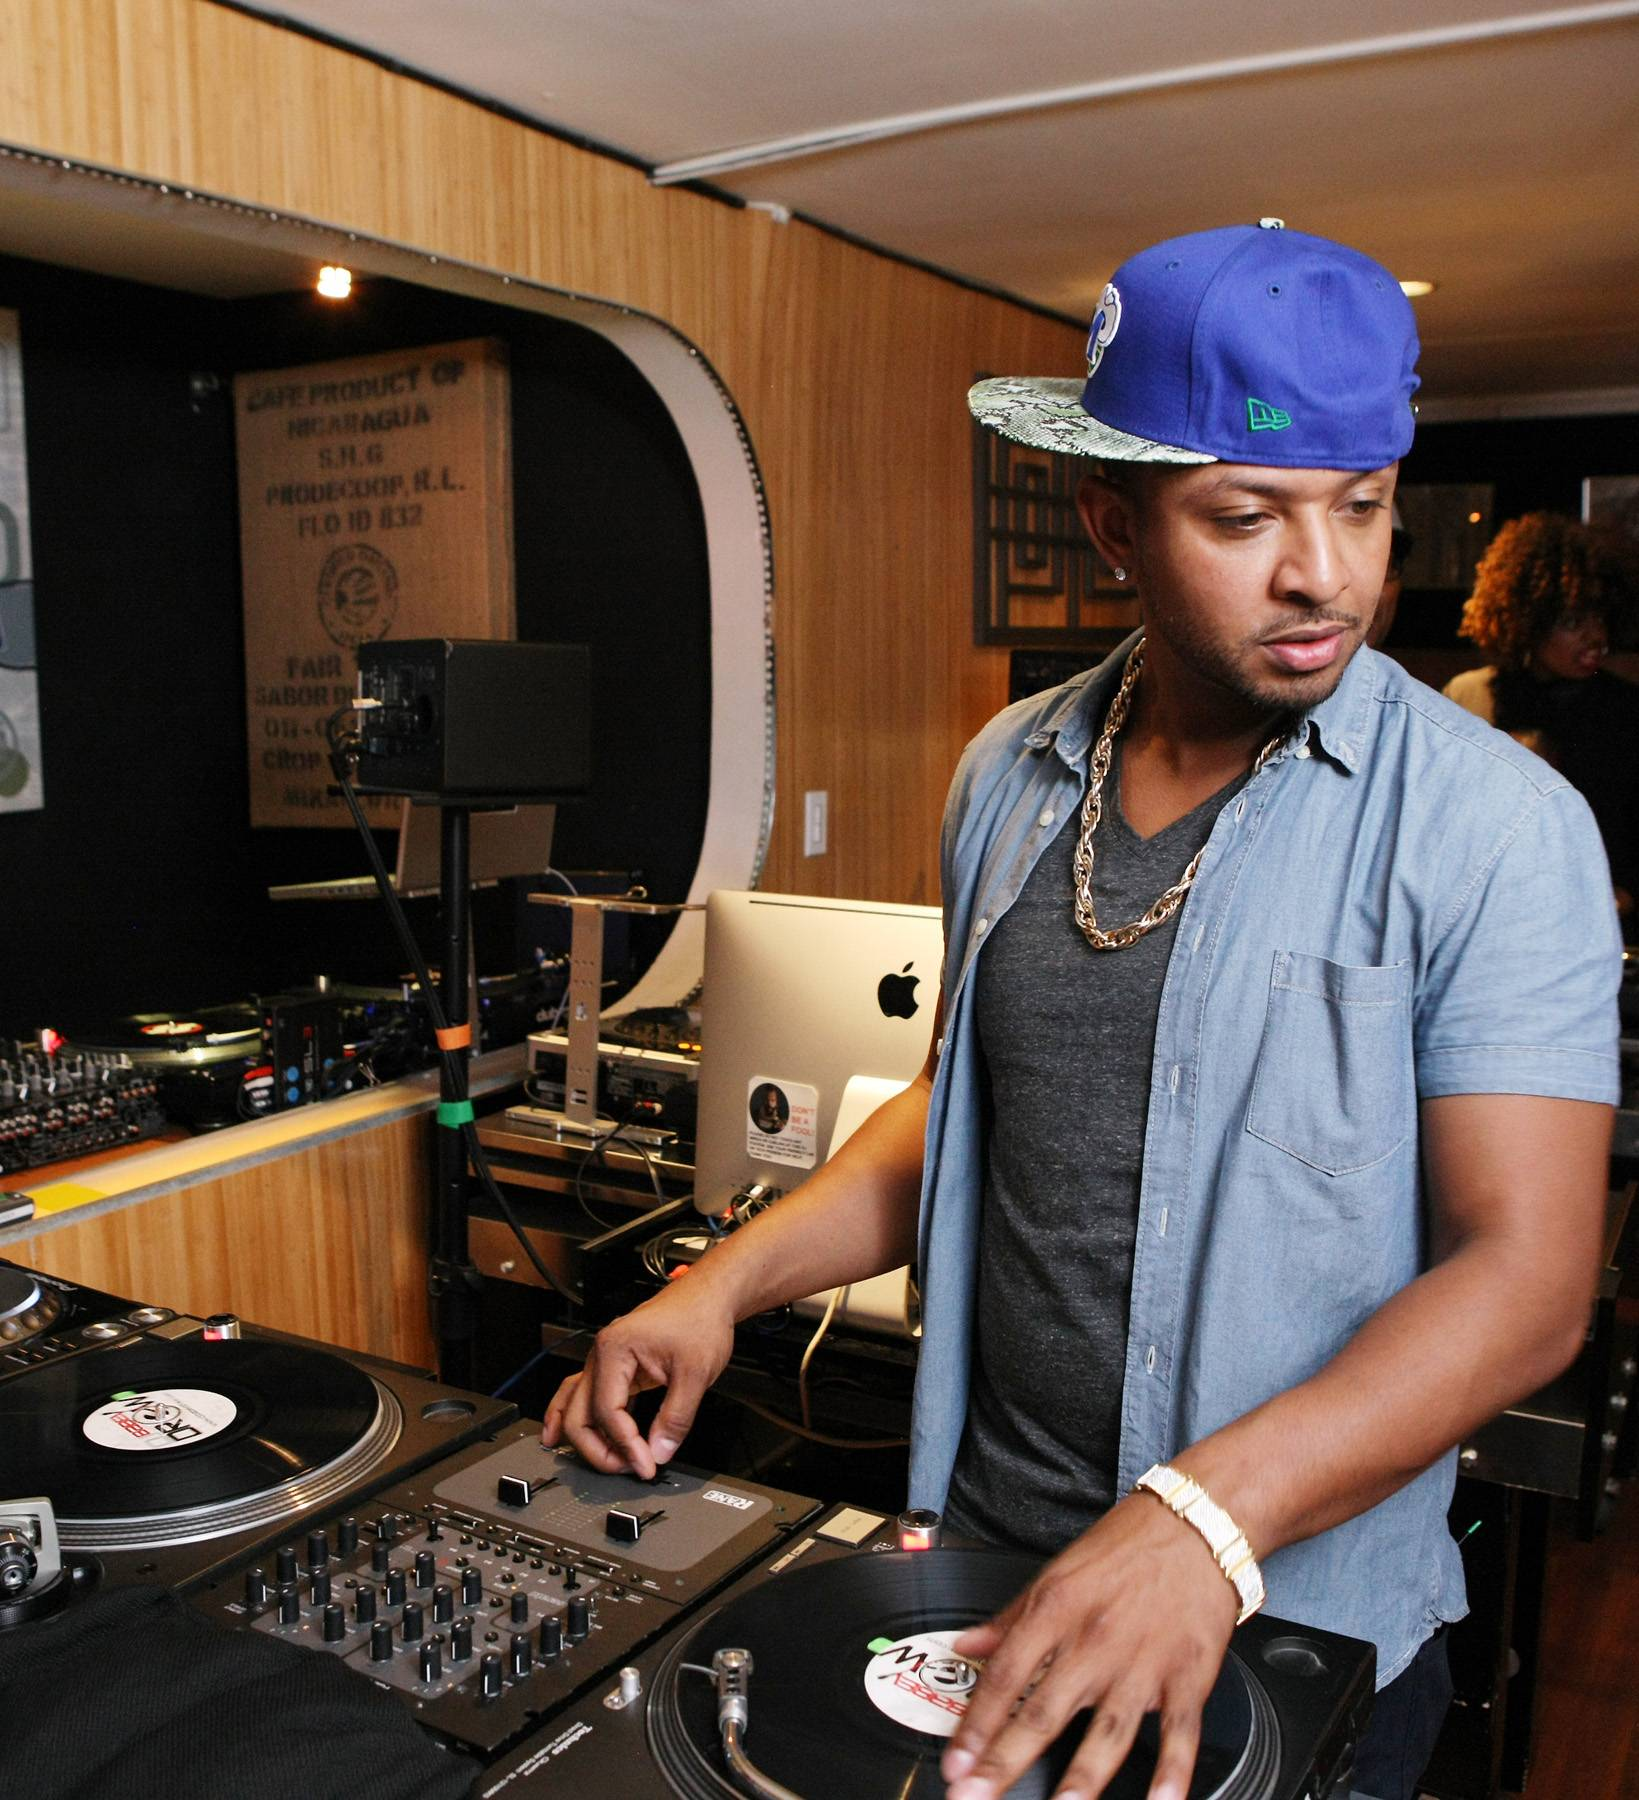 1s and 2s - DJ Babey Drew guides the hosts in how to be scratch masters. (Photo: Bennett Raglin/BET/Getty Images for BET)